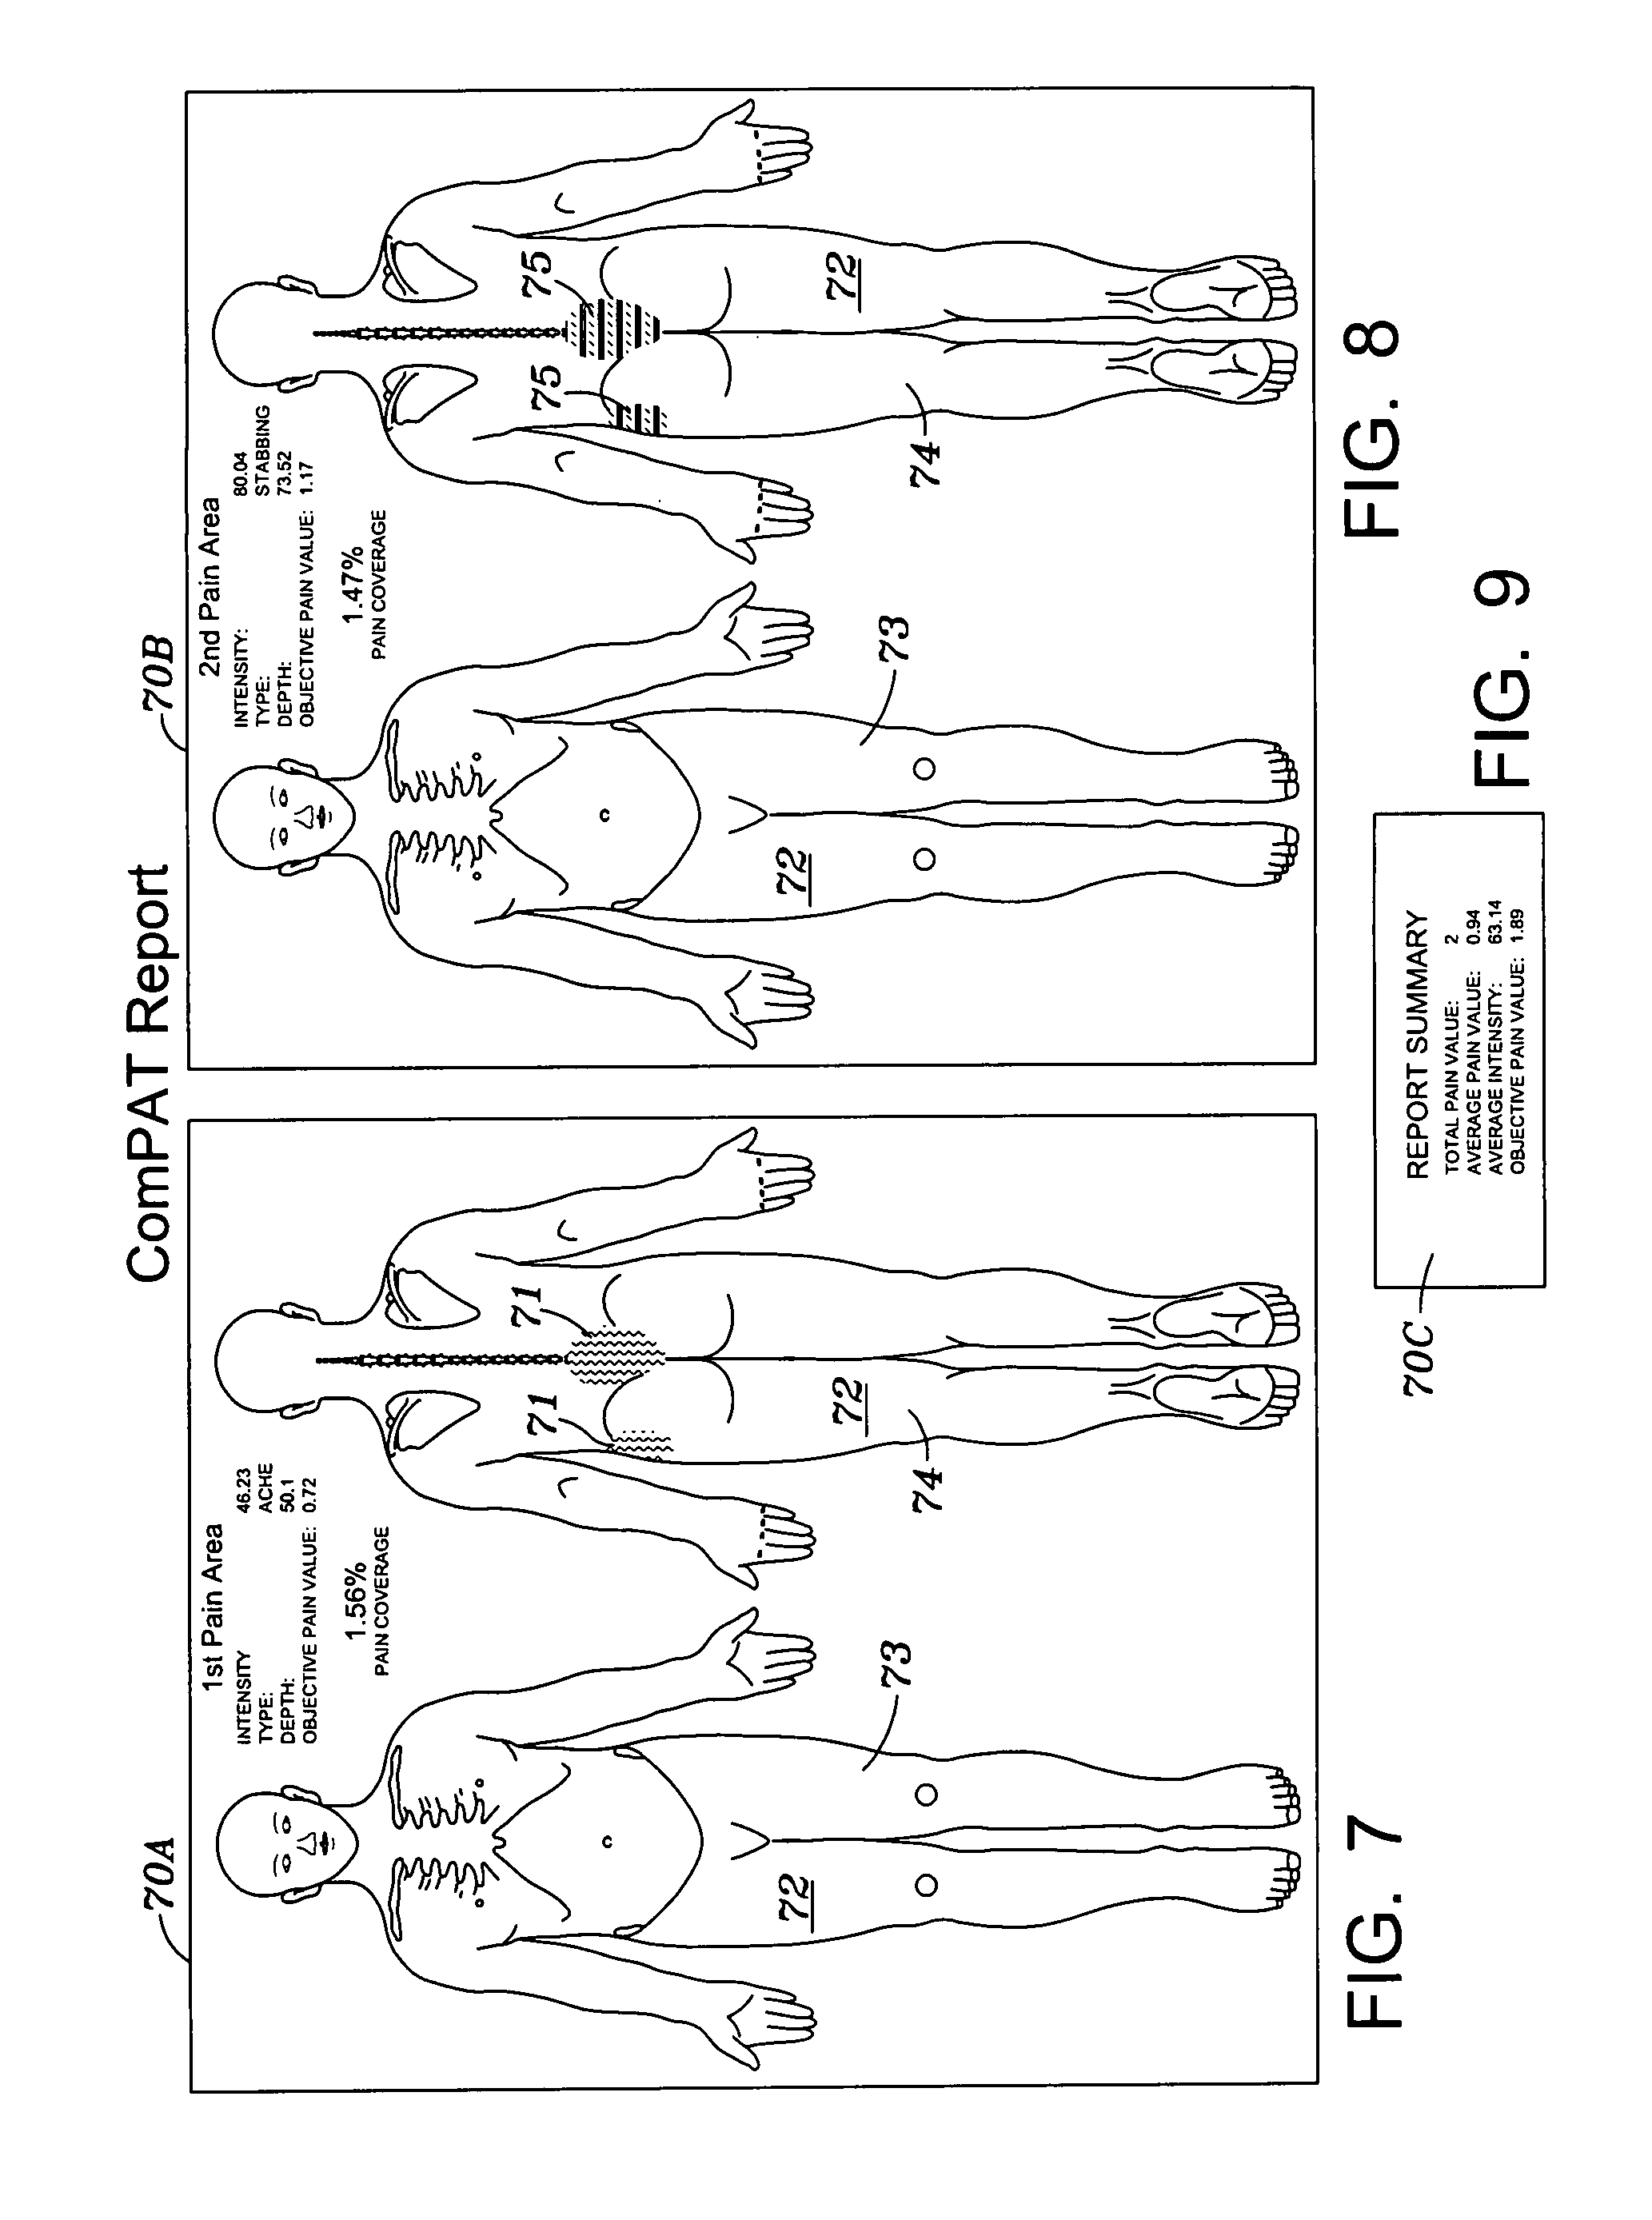 skin assessment diagram 2005 ford f150 remote start wiring patent us8046241 computer pain tool google